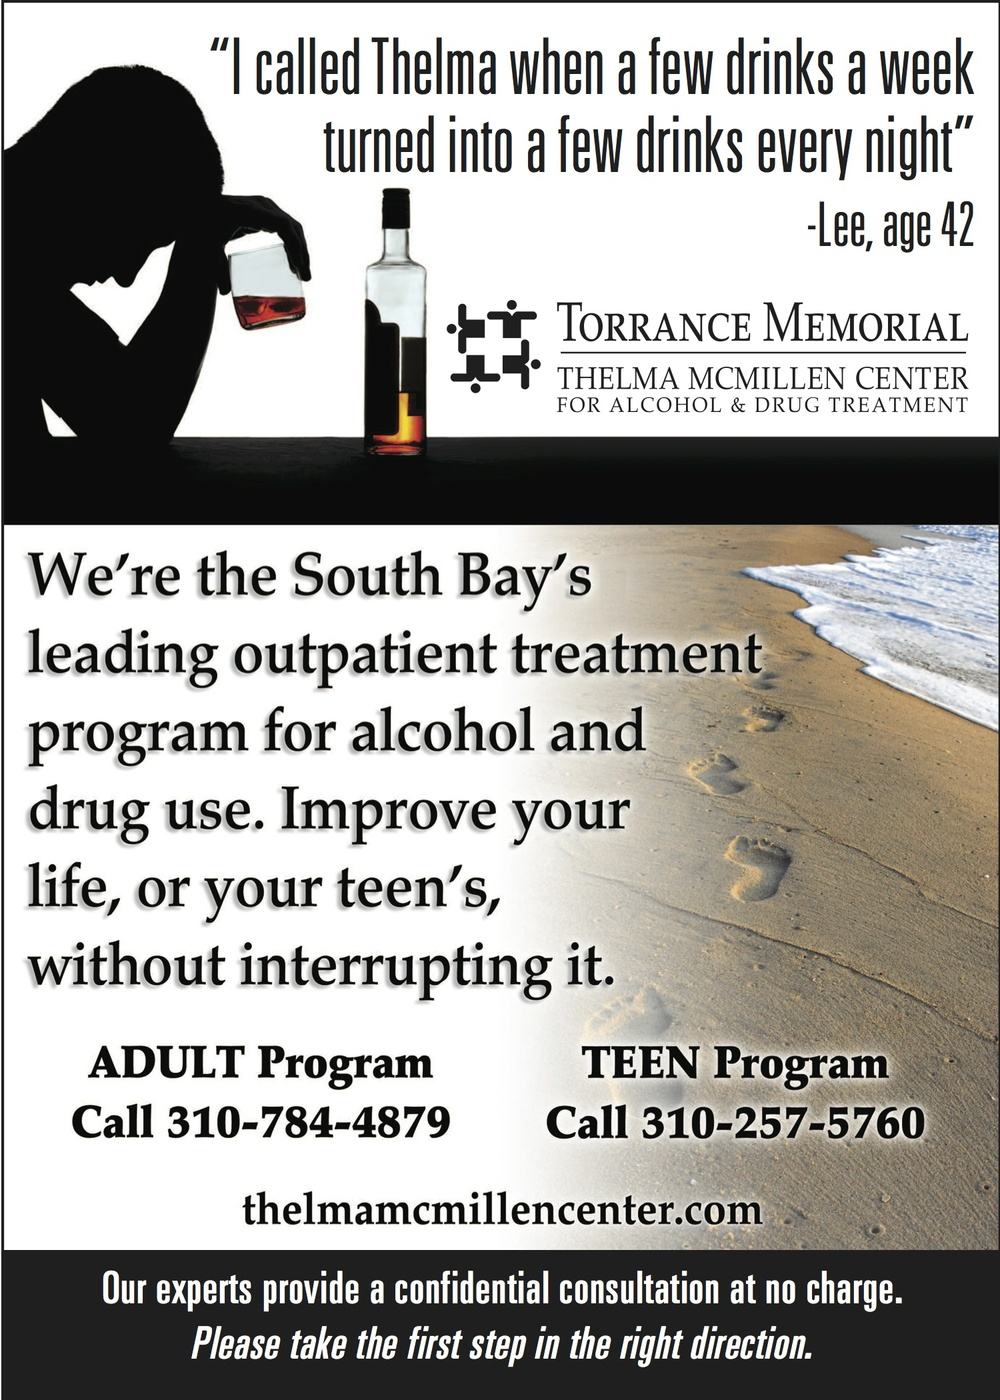 thelma-mcmillen-alcohol-abuse-treatment